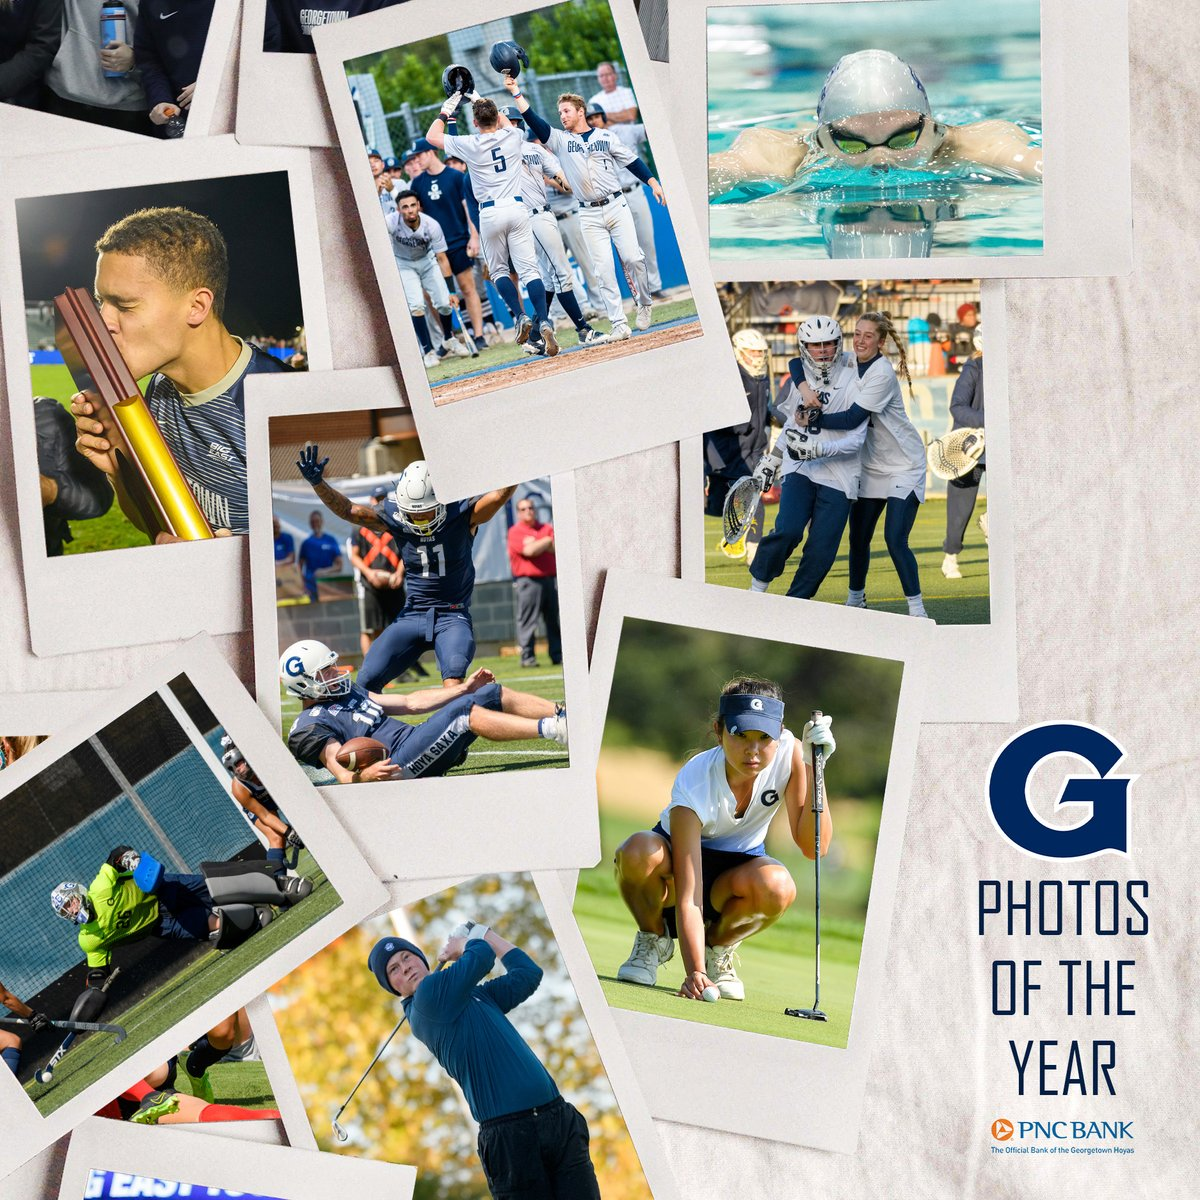 Check out some of our Photos of the Year presented by @PNCBank #HOYASAXA